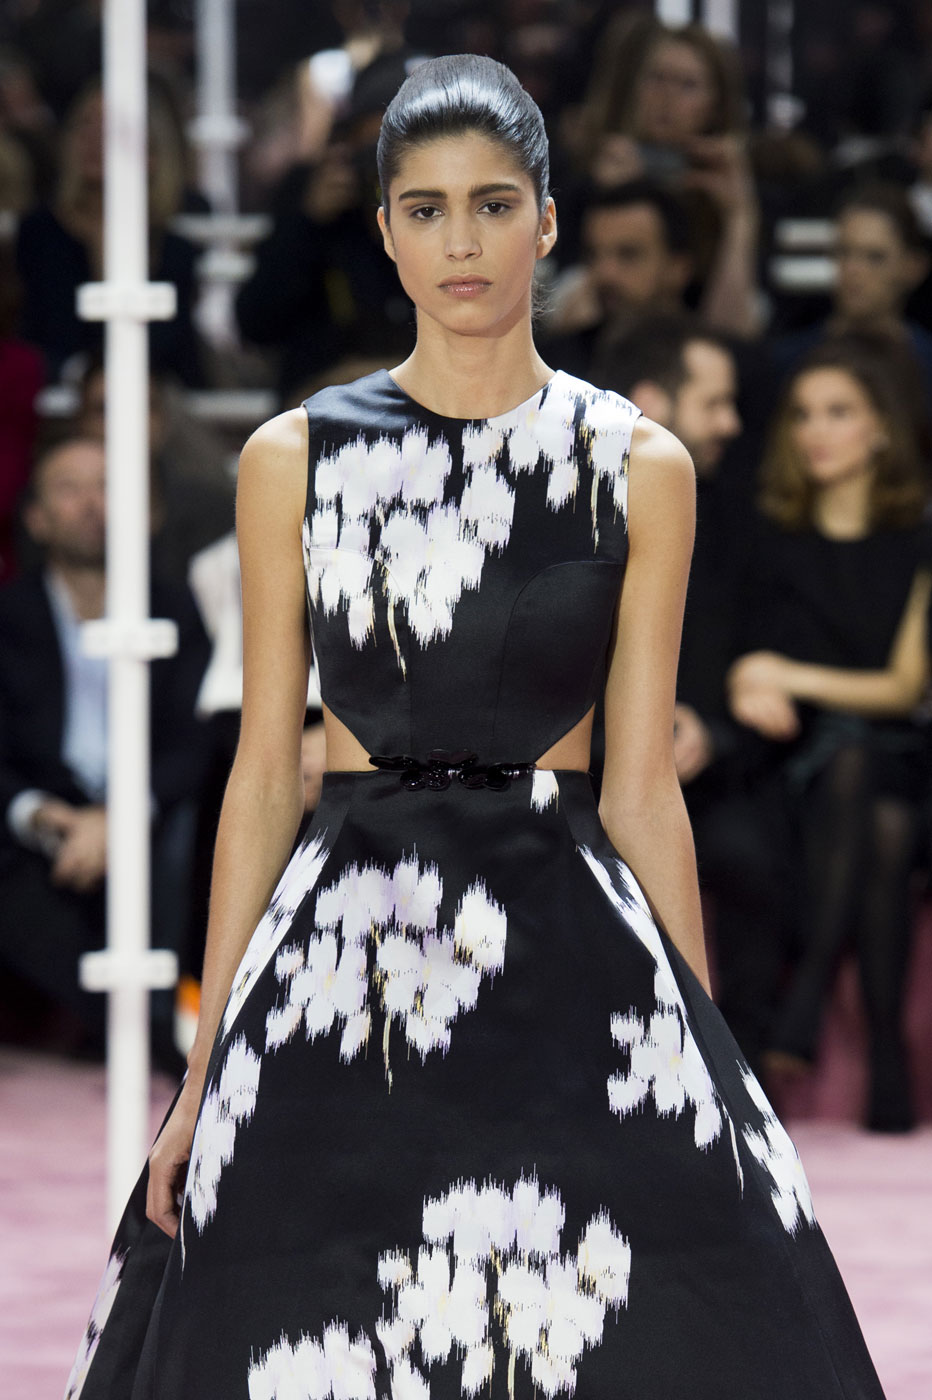 Christian-Dior-fashion-runway-show-haute-couture-paris-spring-summer-2015-the-impression-020